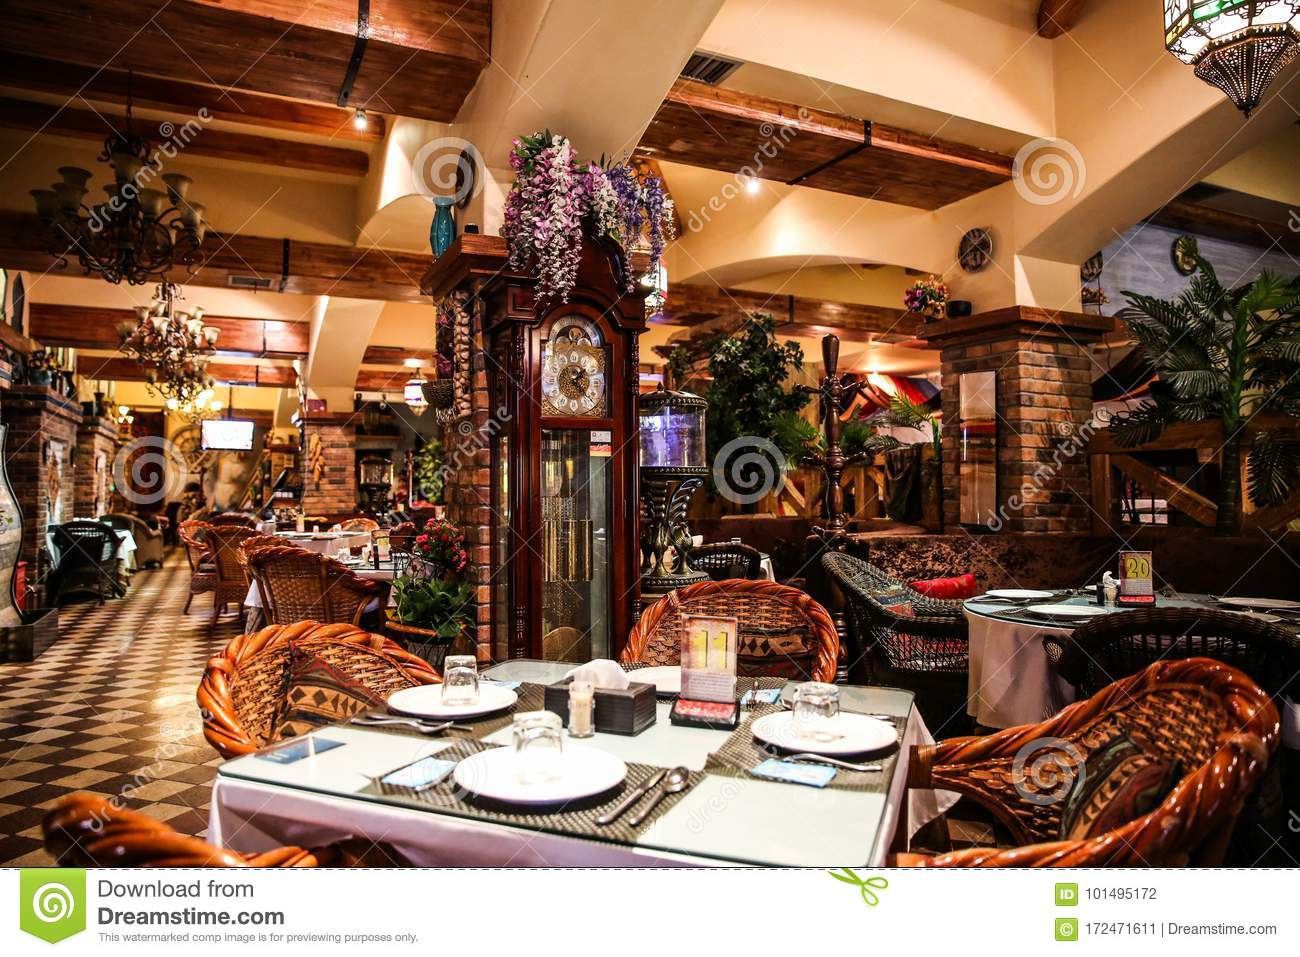 Restaurant stock photo  Image of chandeliers, chair - 101495172